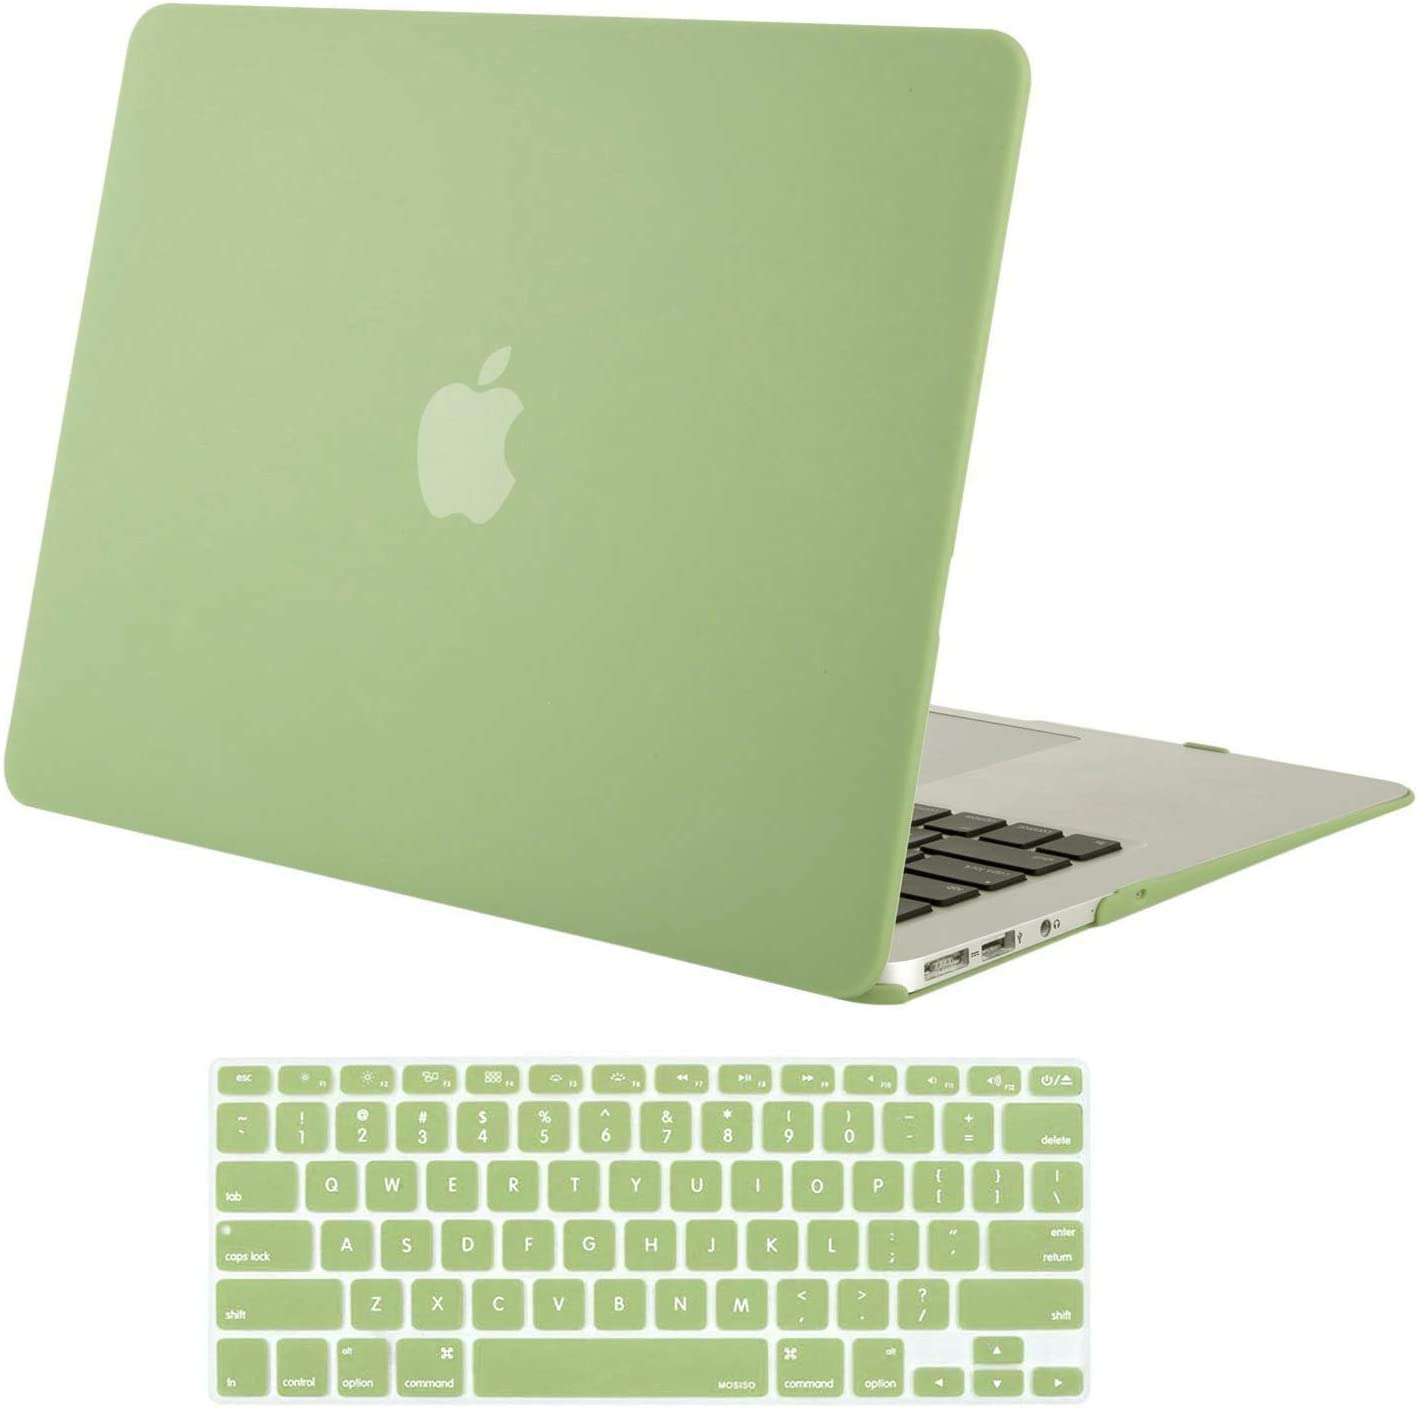 MOSISO MacBook Air 13 inch Case (Models: A1369 & A1466, Older Version 2010-2017 Release), Plastic Hard Shell Case & Keyboard Cover Skin Only Compatible with MacBook Air 13 inch, Avocado Green